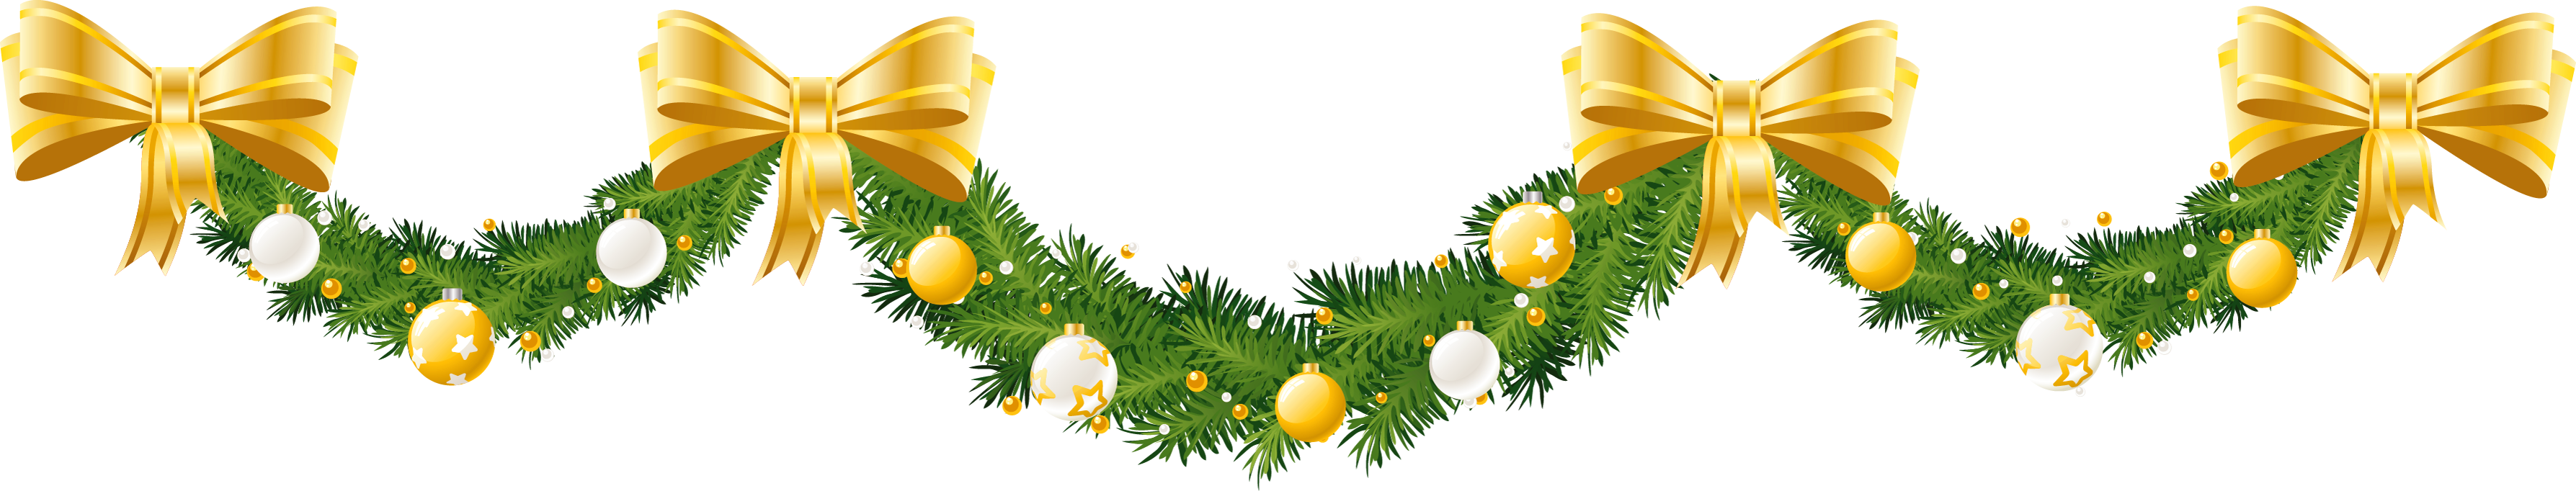 Christmas Ornament Border Clipart | Clipart Panda - Free Clipart ...